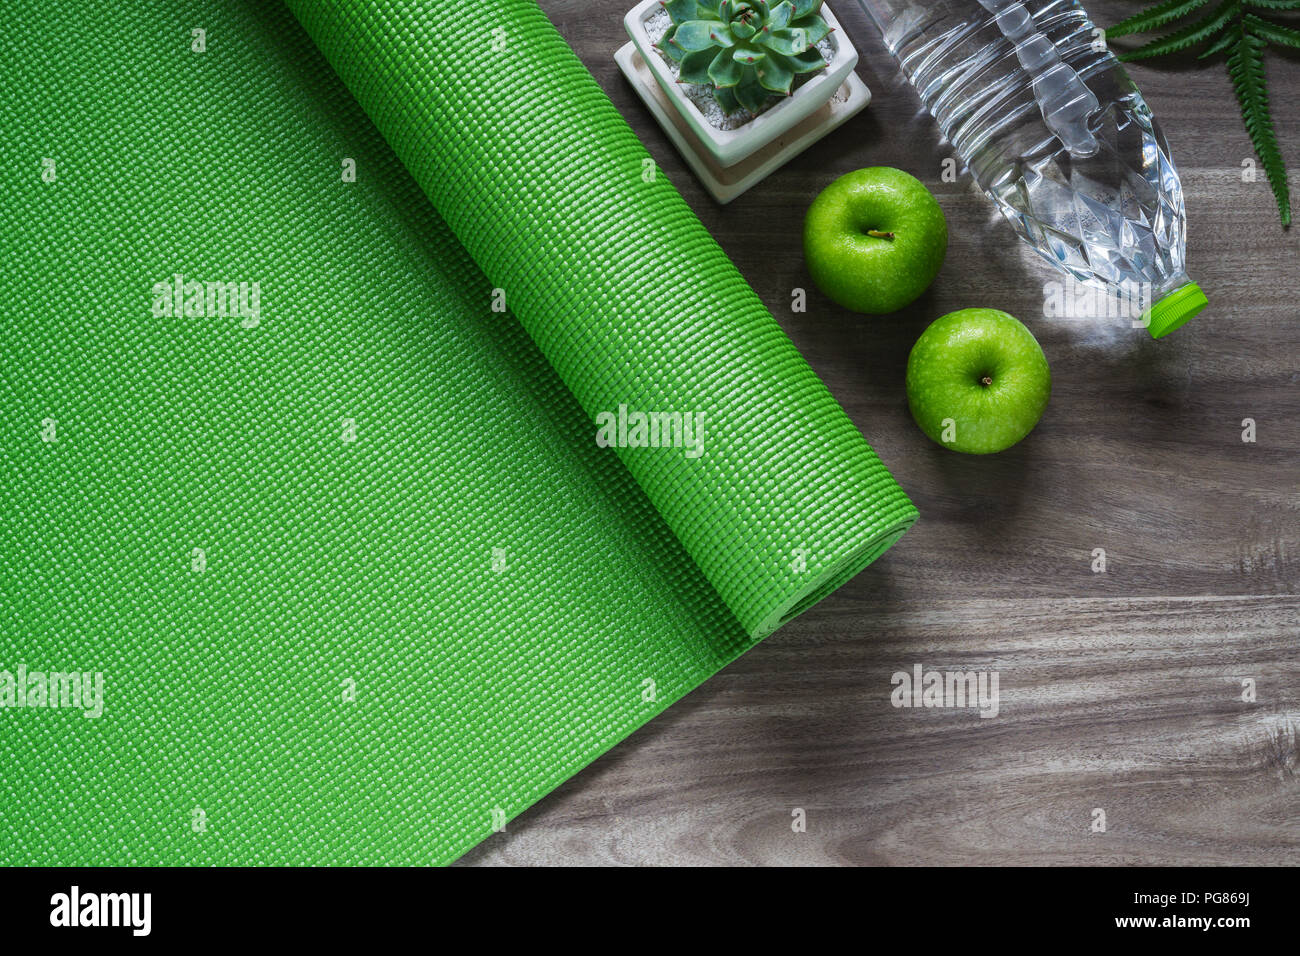 f84de9ba78ffa Green yoga mat on a wooden background with green apples and bottle of  water. Active healthy lifestyle background concept.